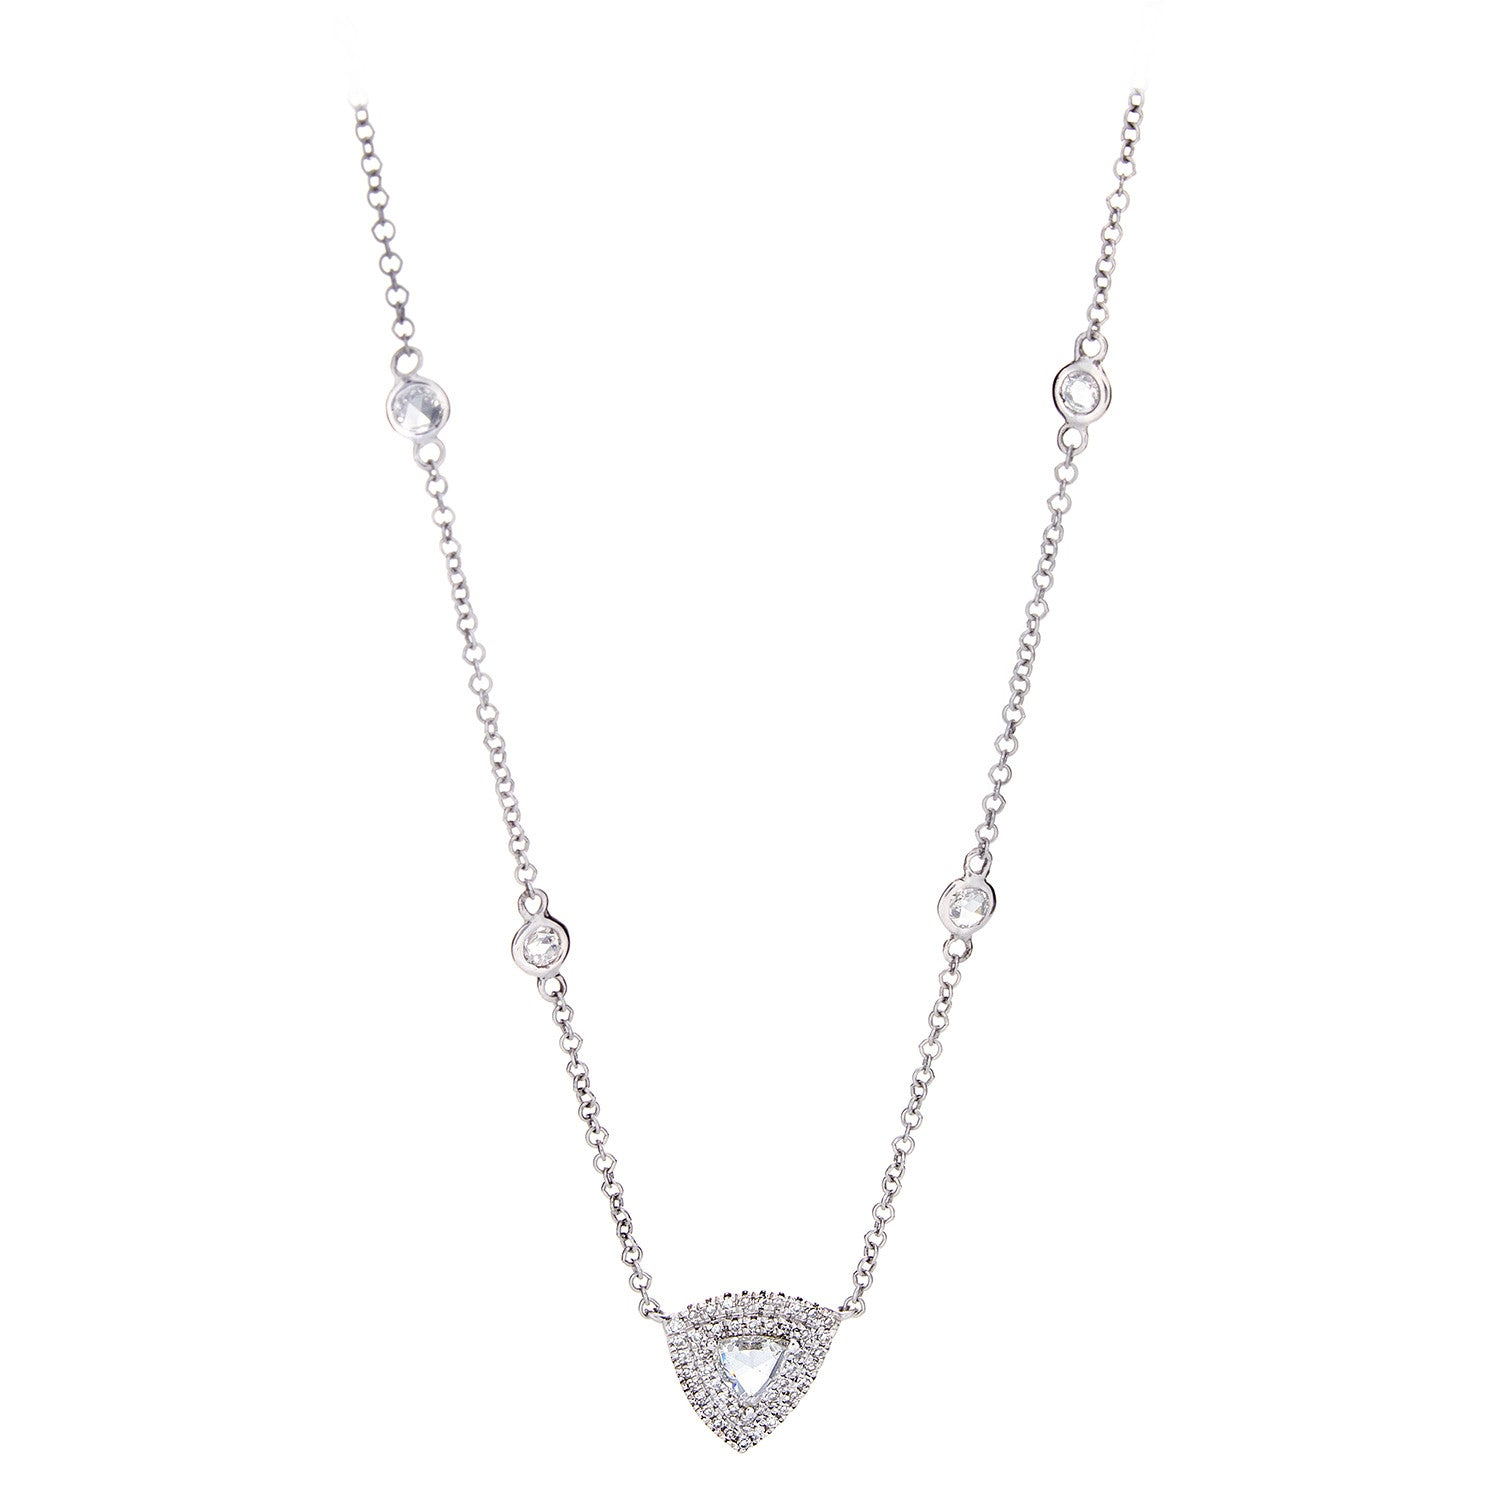 Rose Cut & Pave Diamond White Gold Necklace